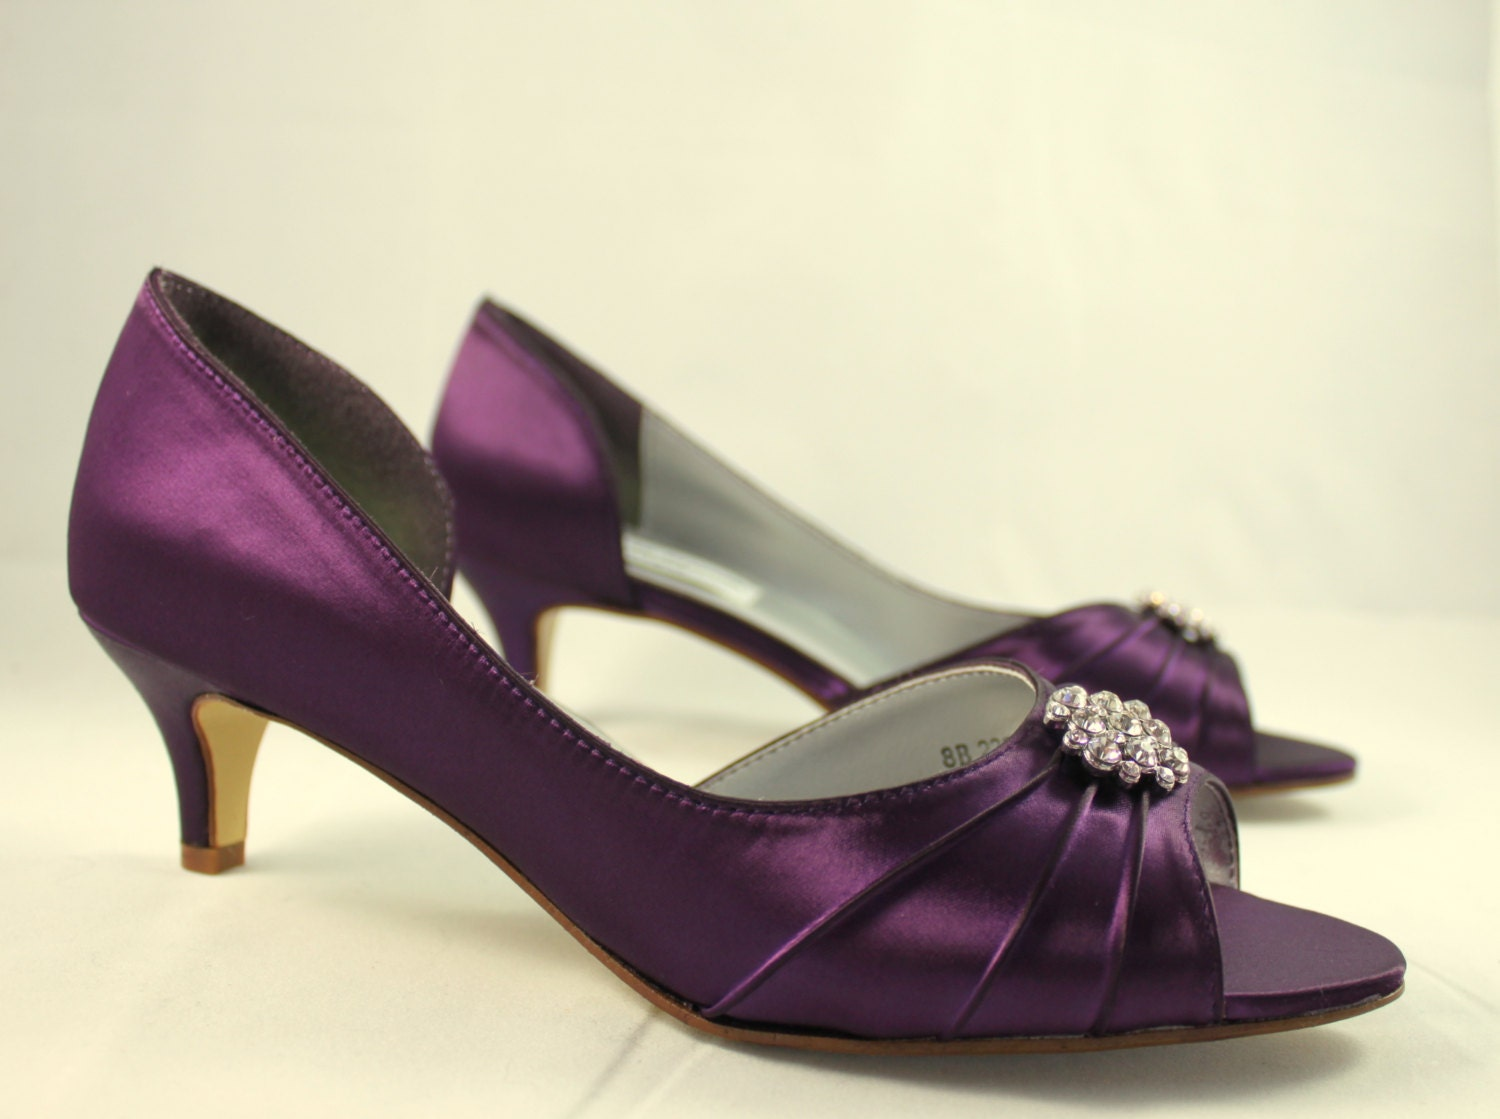 Superb Purple Wedding Shoes Low Heel SALE Size 8    1.75 Inch Heel   Aubergine  Colored Shoes Ready To Ship   Eggplant Shoe